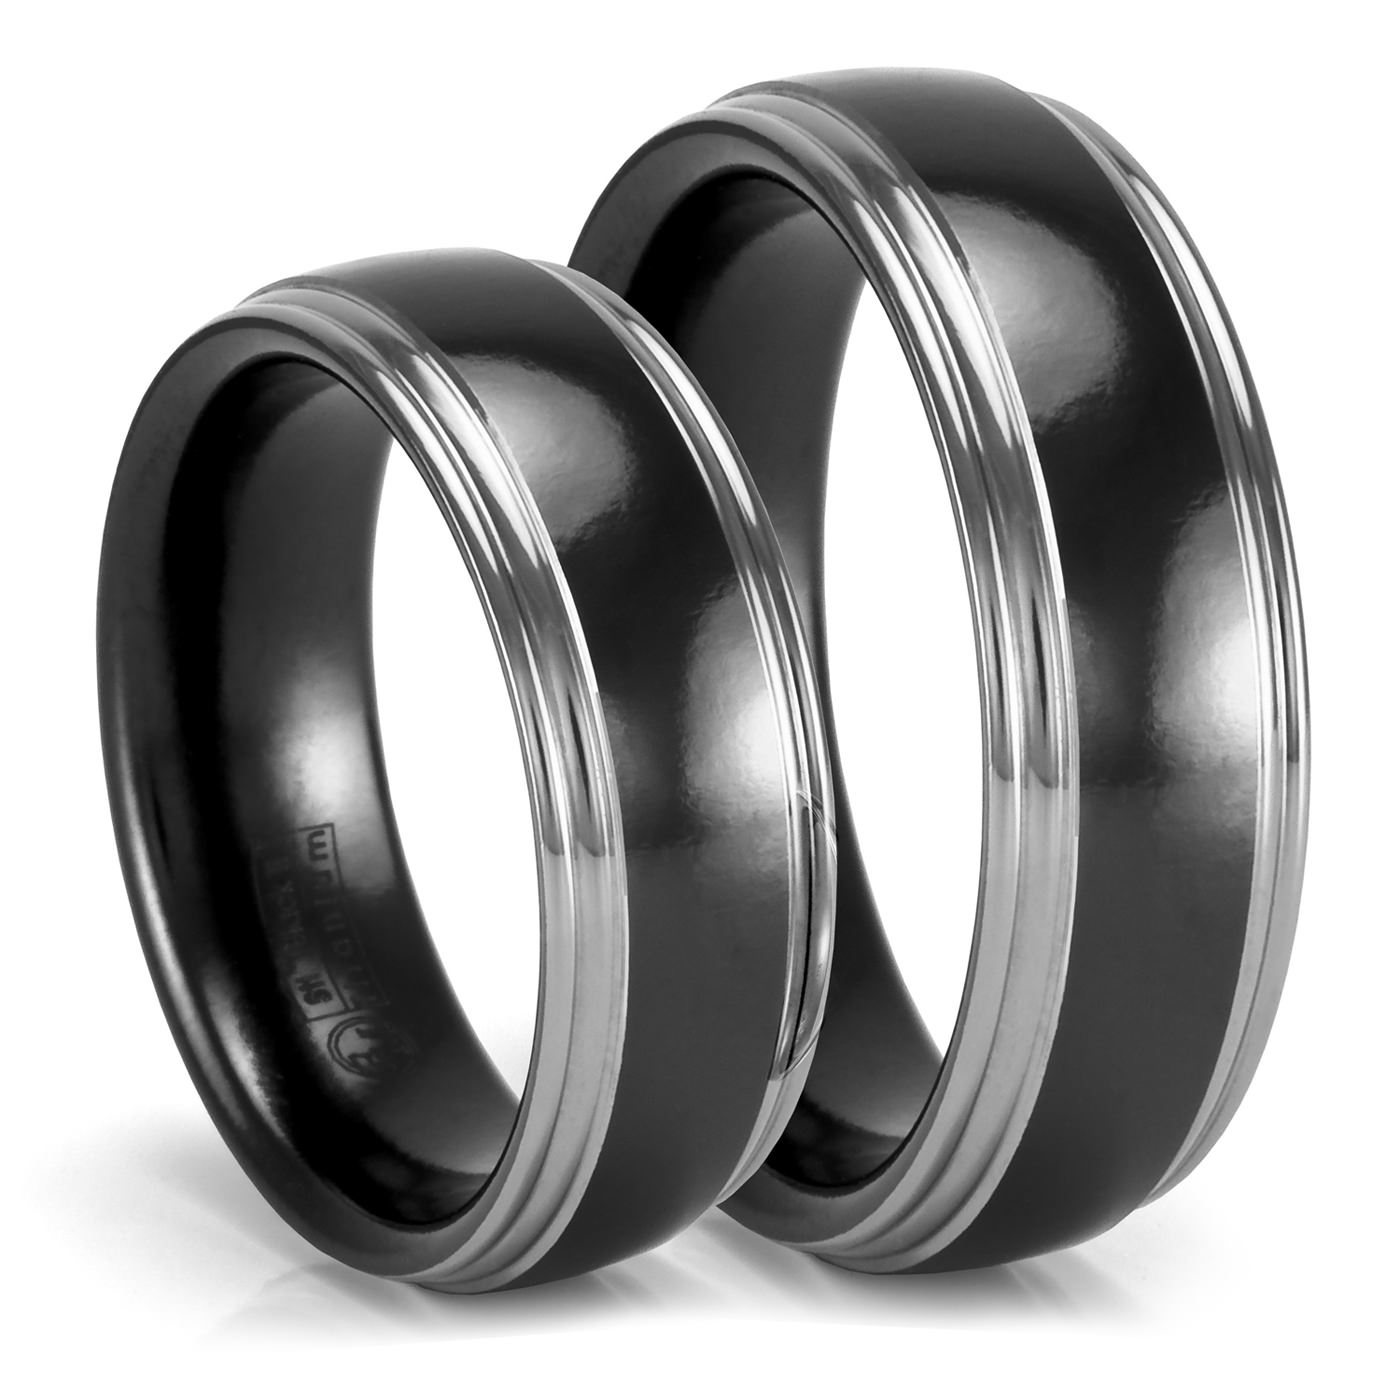 band women wedding engagement titanium insets with ion ring cz hers his black rings sets princess plated cut bridal square silver aaa set s elegant pin men